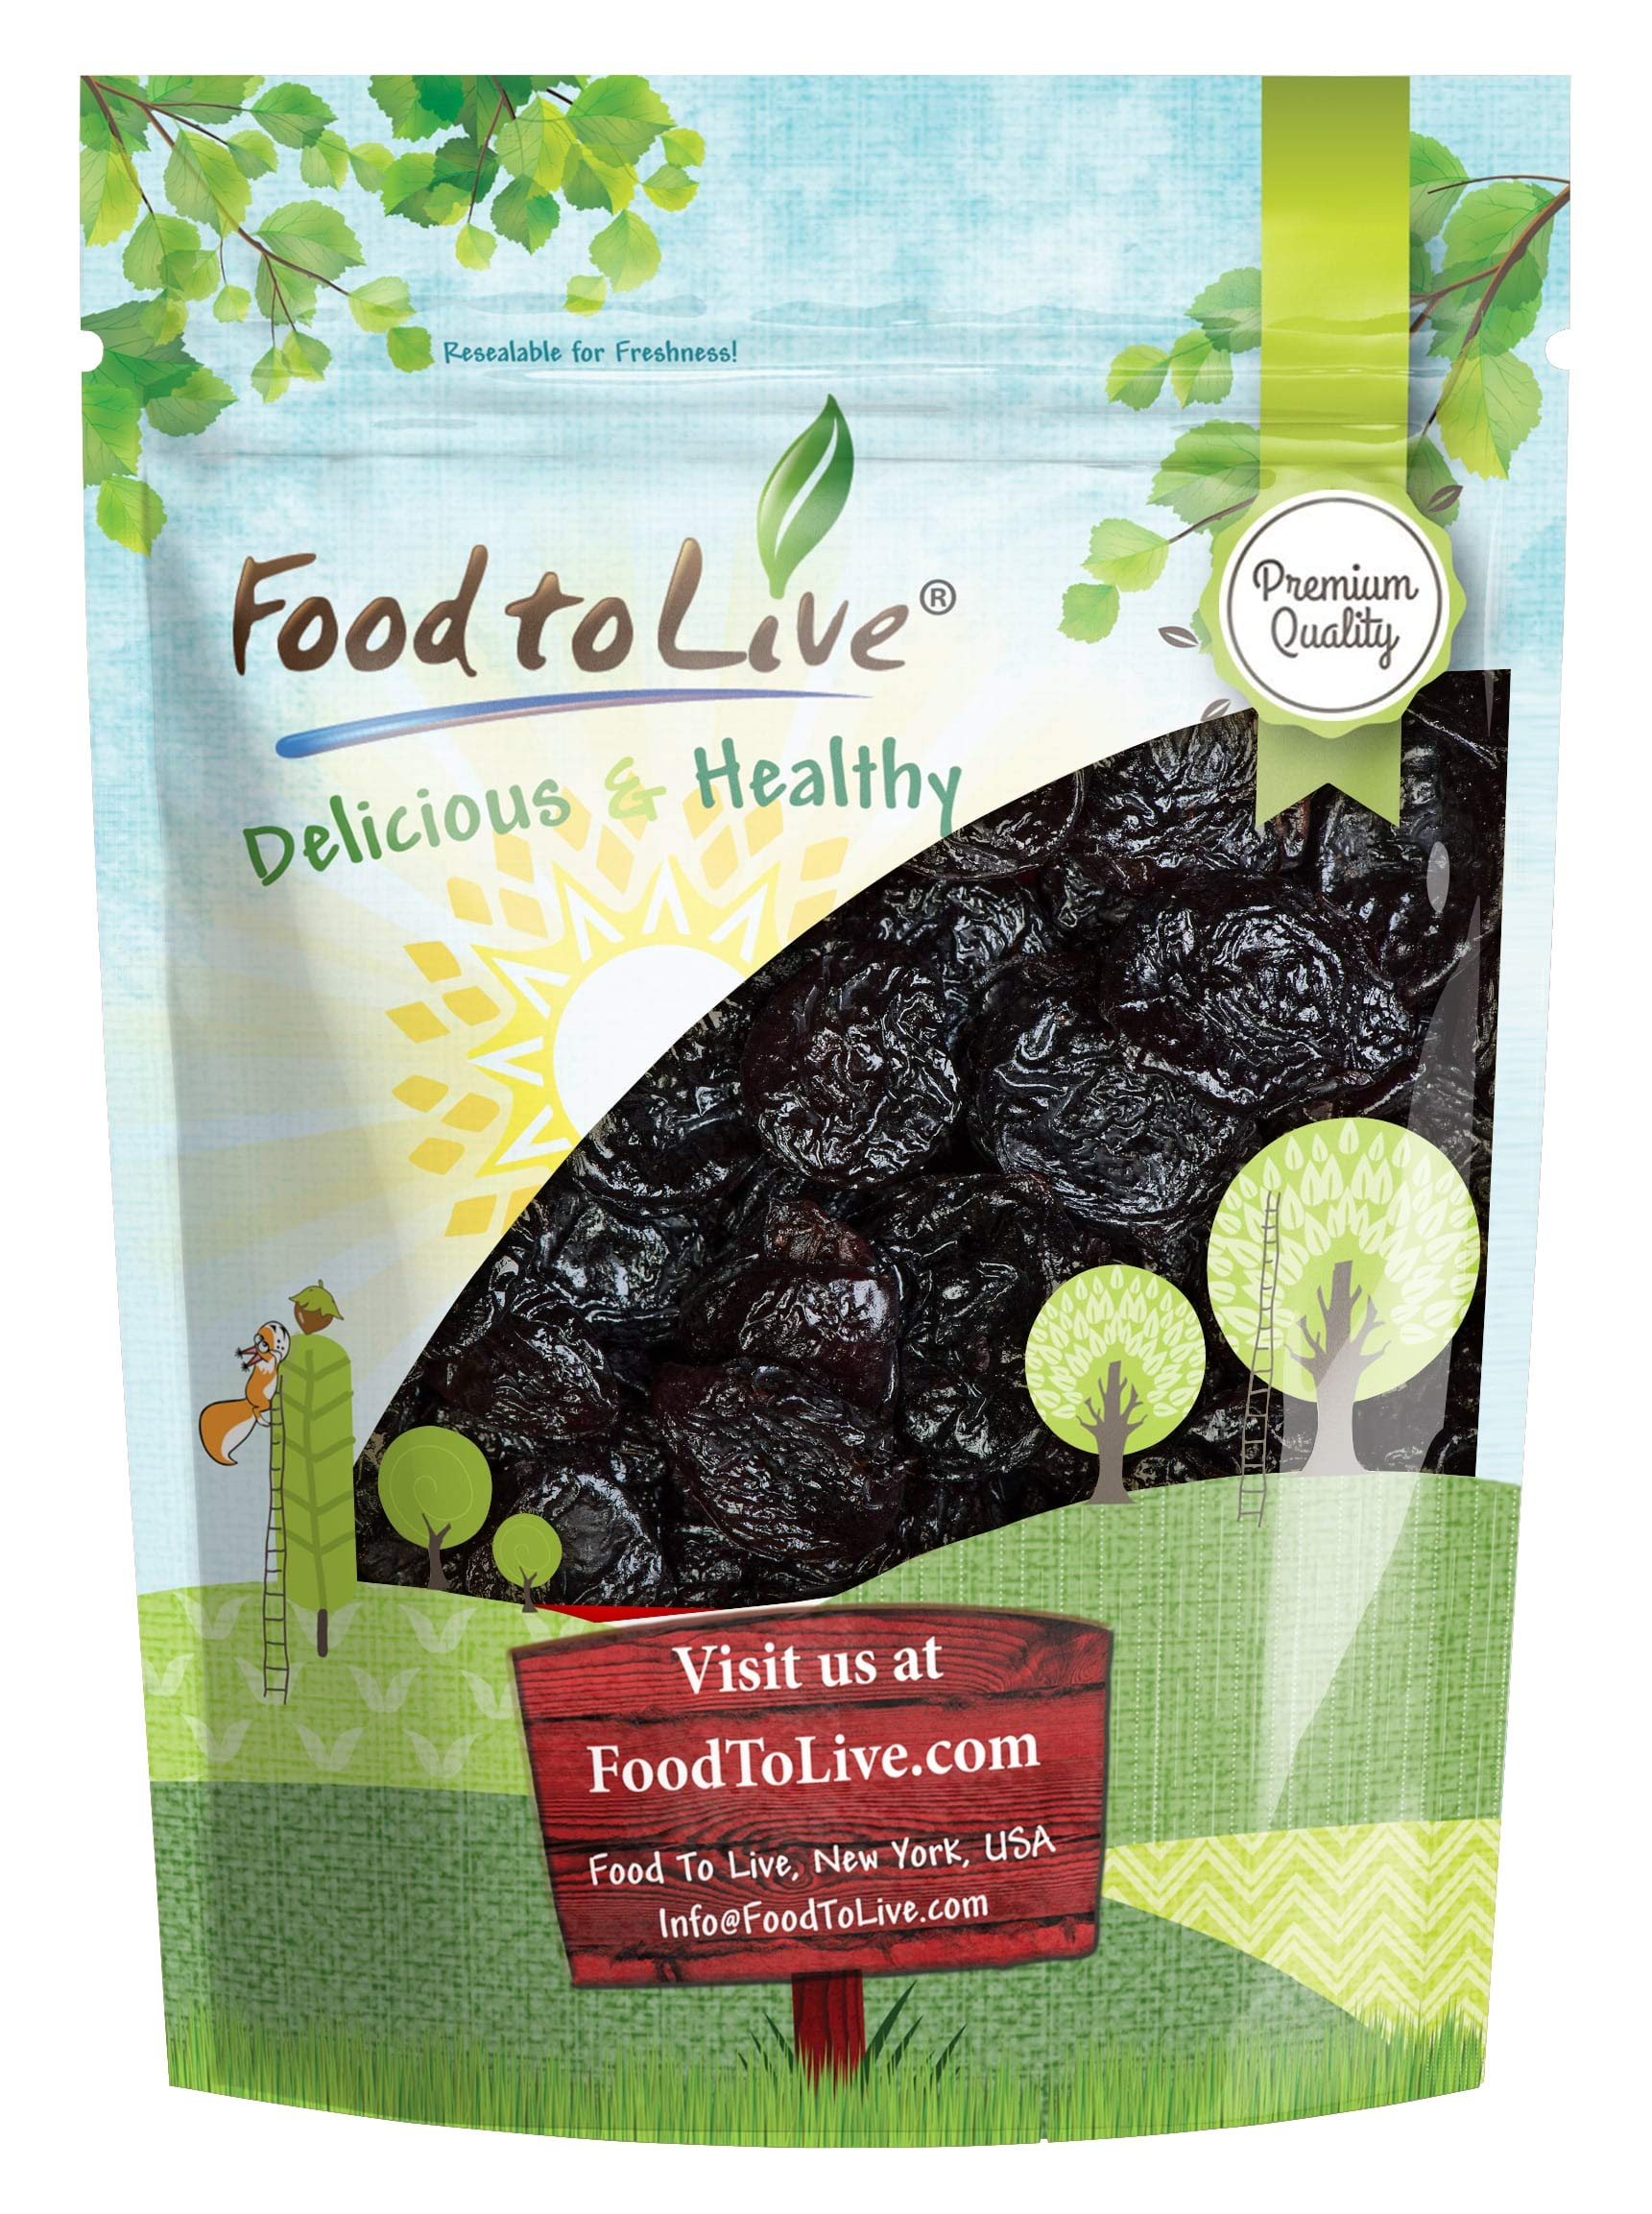 Pitted Prunes, 8 Ounces - Whole Dried Plums, Unsulfured, Unsweetened, Non-Infused, Non-Oil Added, Non-Irradiated, Vegan, Raw, Bulk by Food to Live